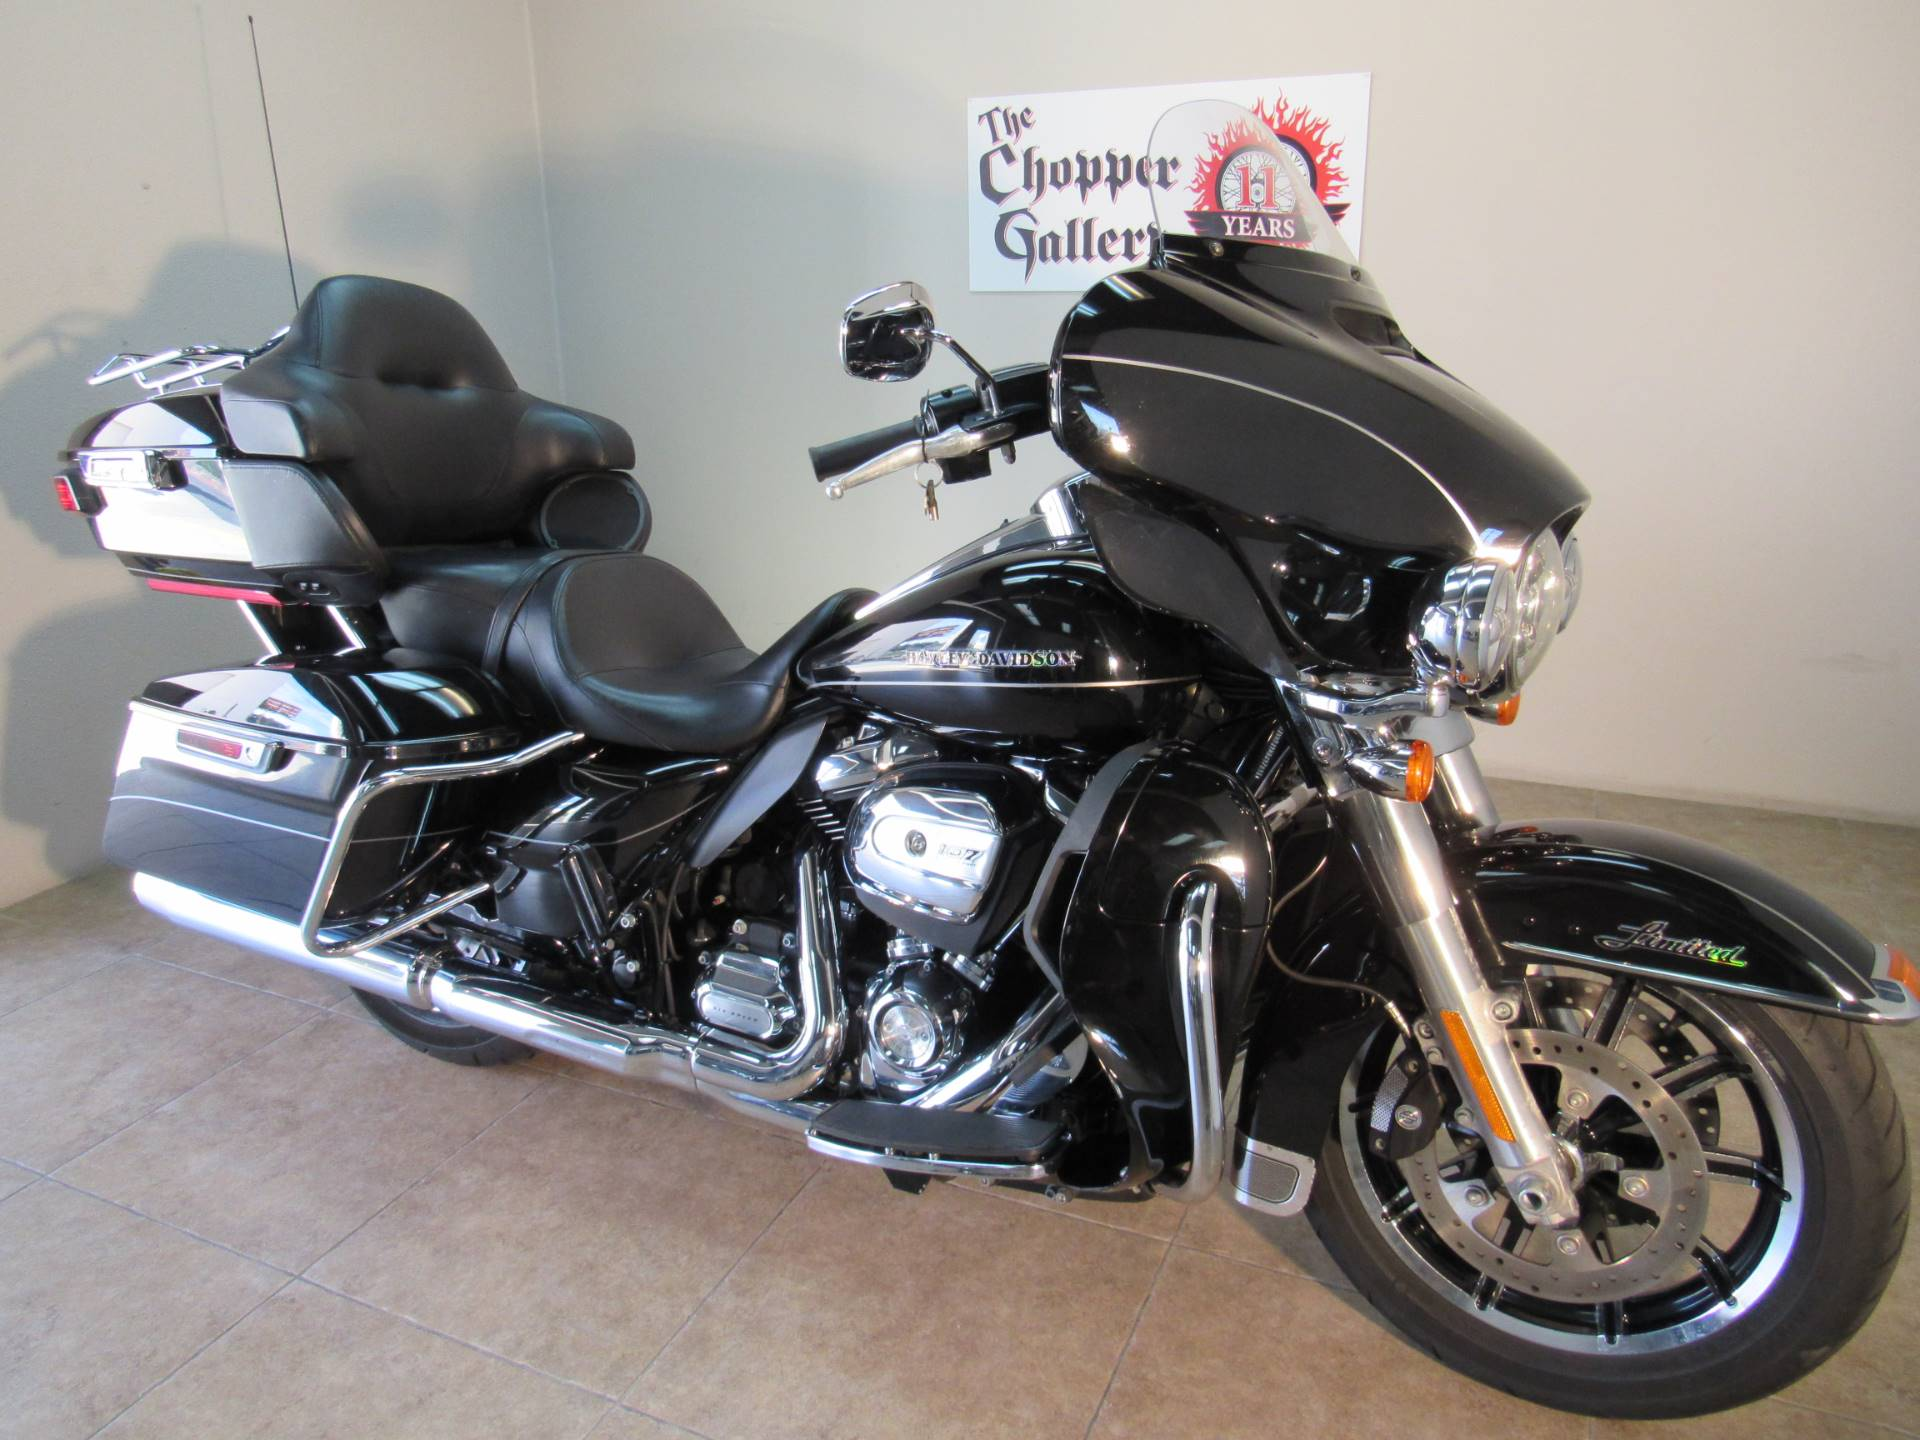 2017 Harley Davidson Ultra Limited Low In Temecula California Photo 1